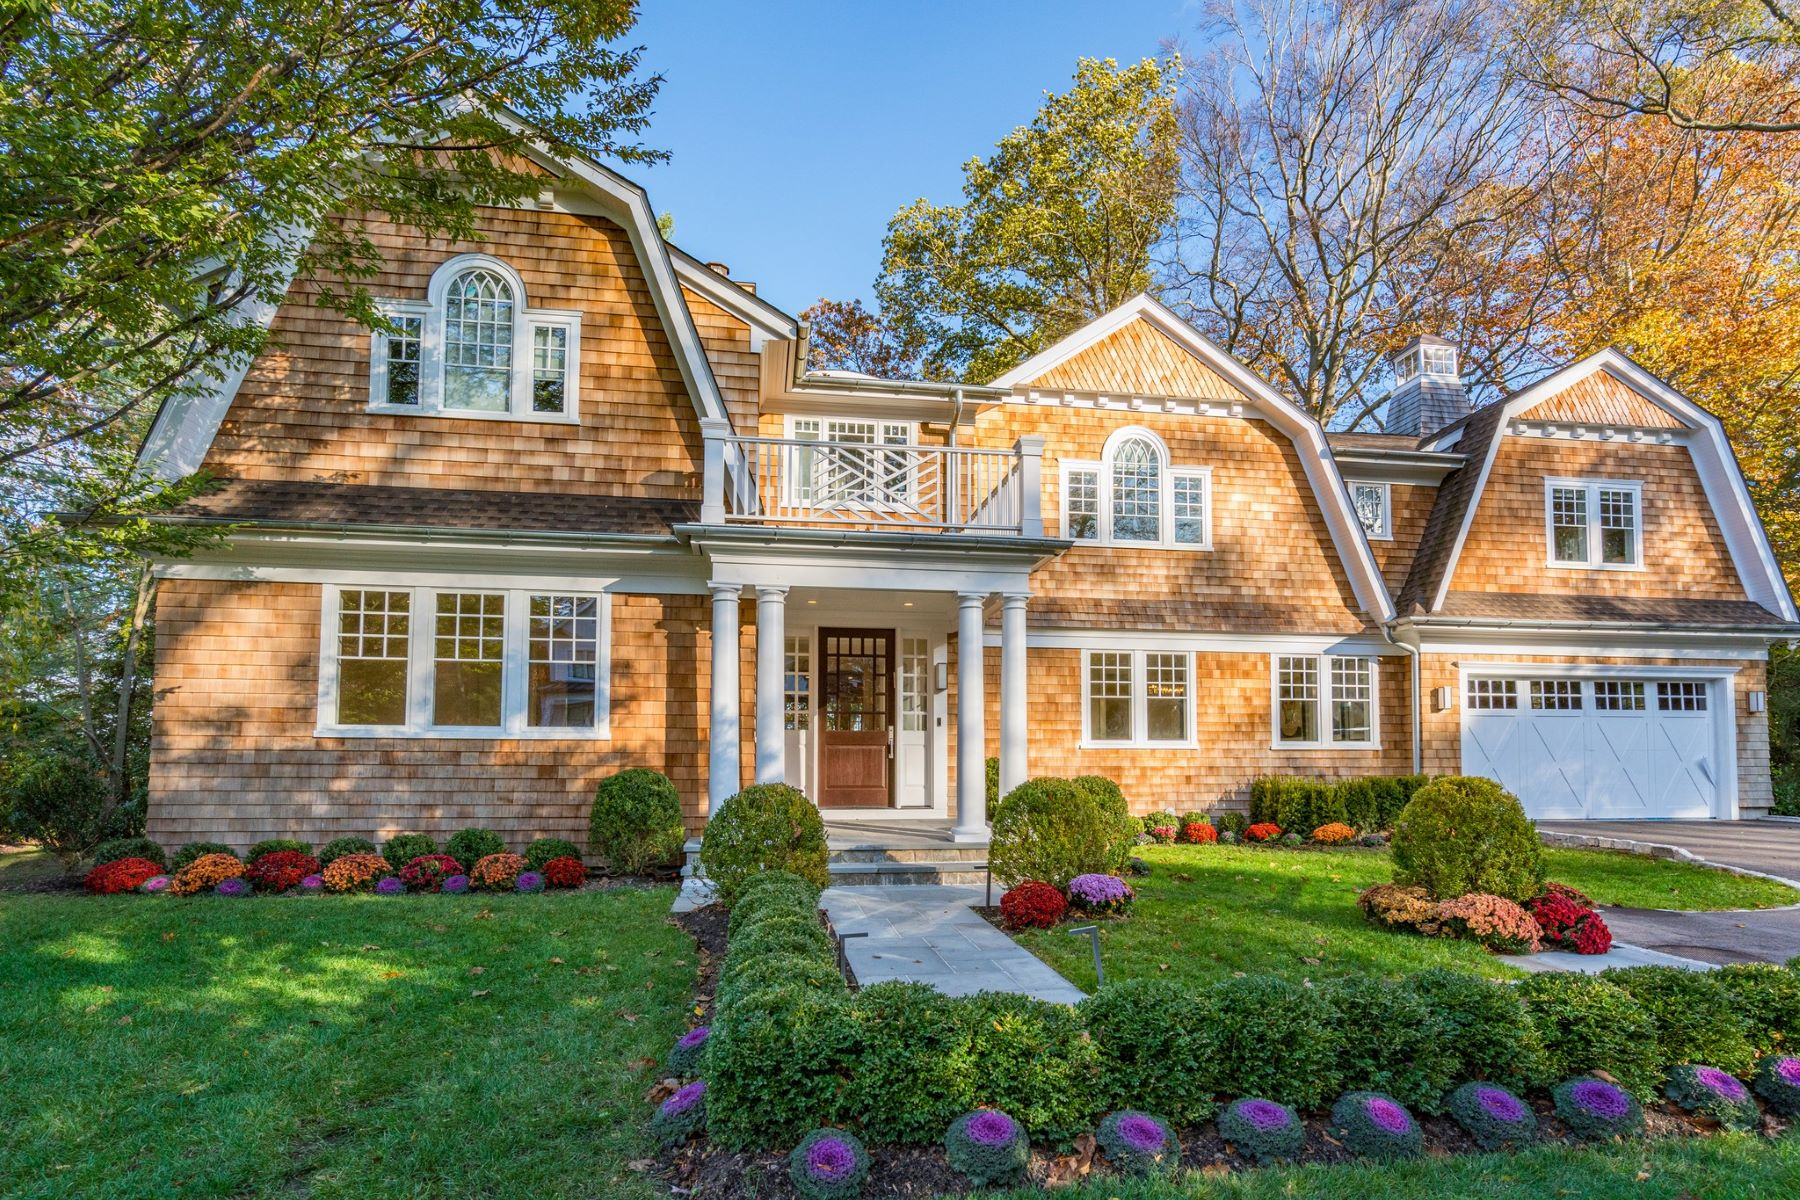 Single Family Homes for Active at East Hills 115 Sycamore Drive East Hills, New York 11576 United States